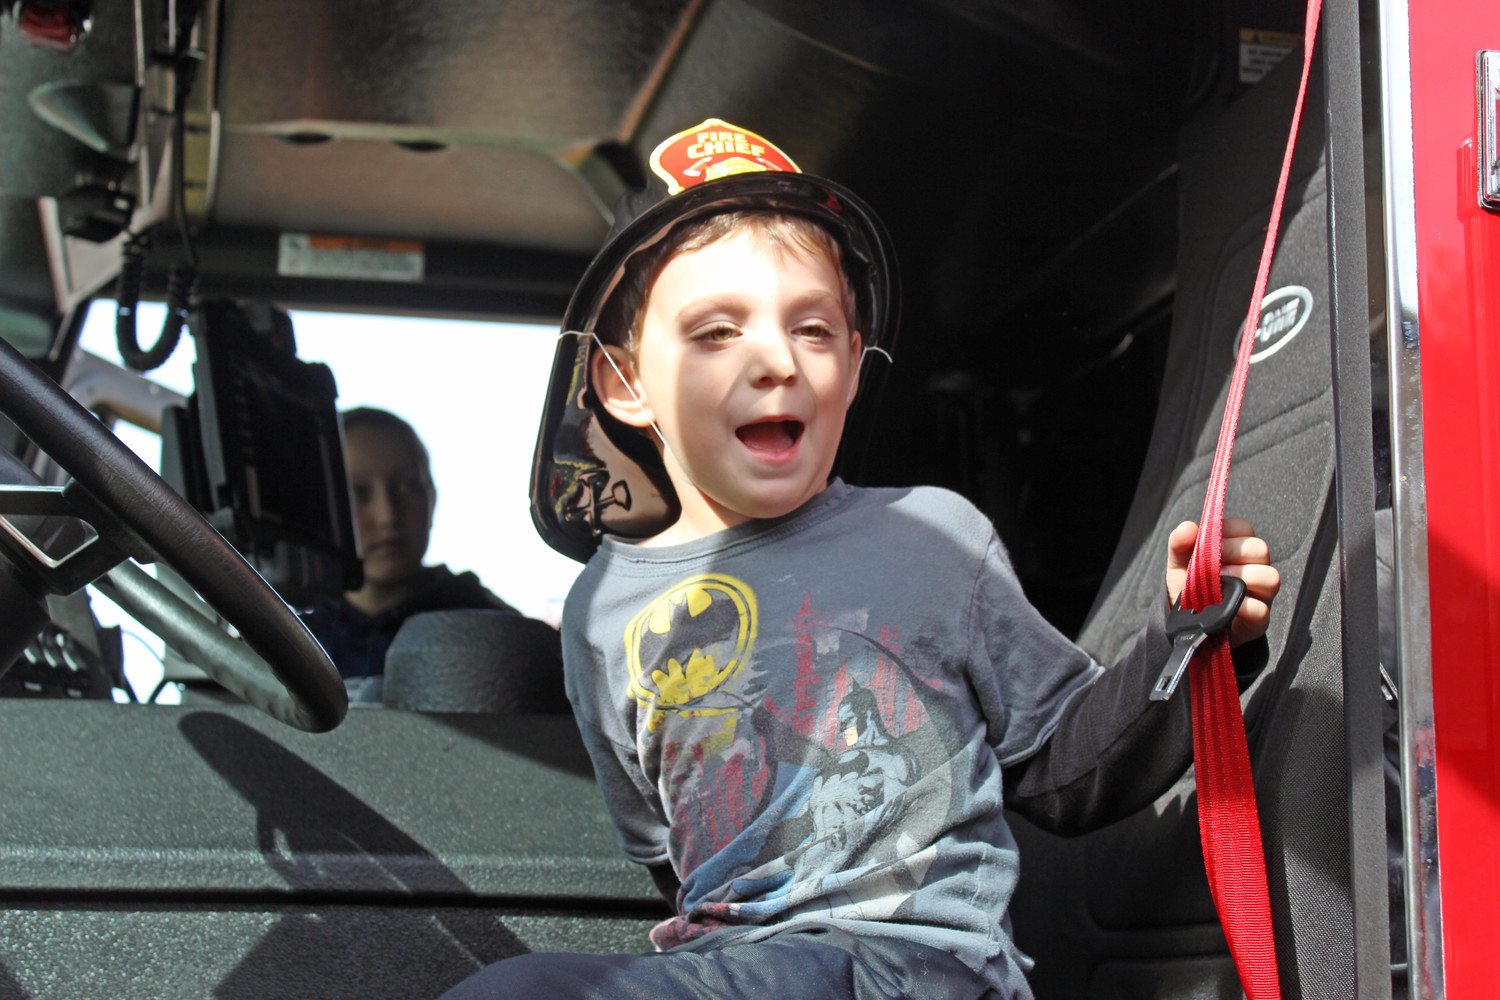 Max Babitz, 4, of Merrick, took a turn sitting in one of the fire department's engines.